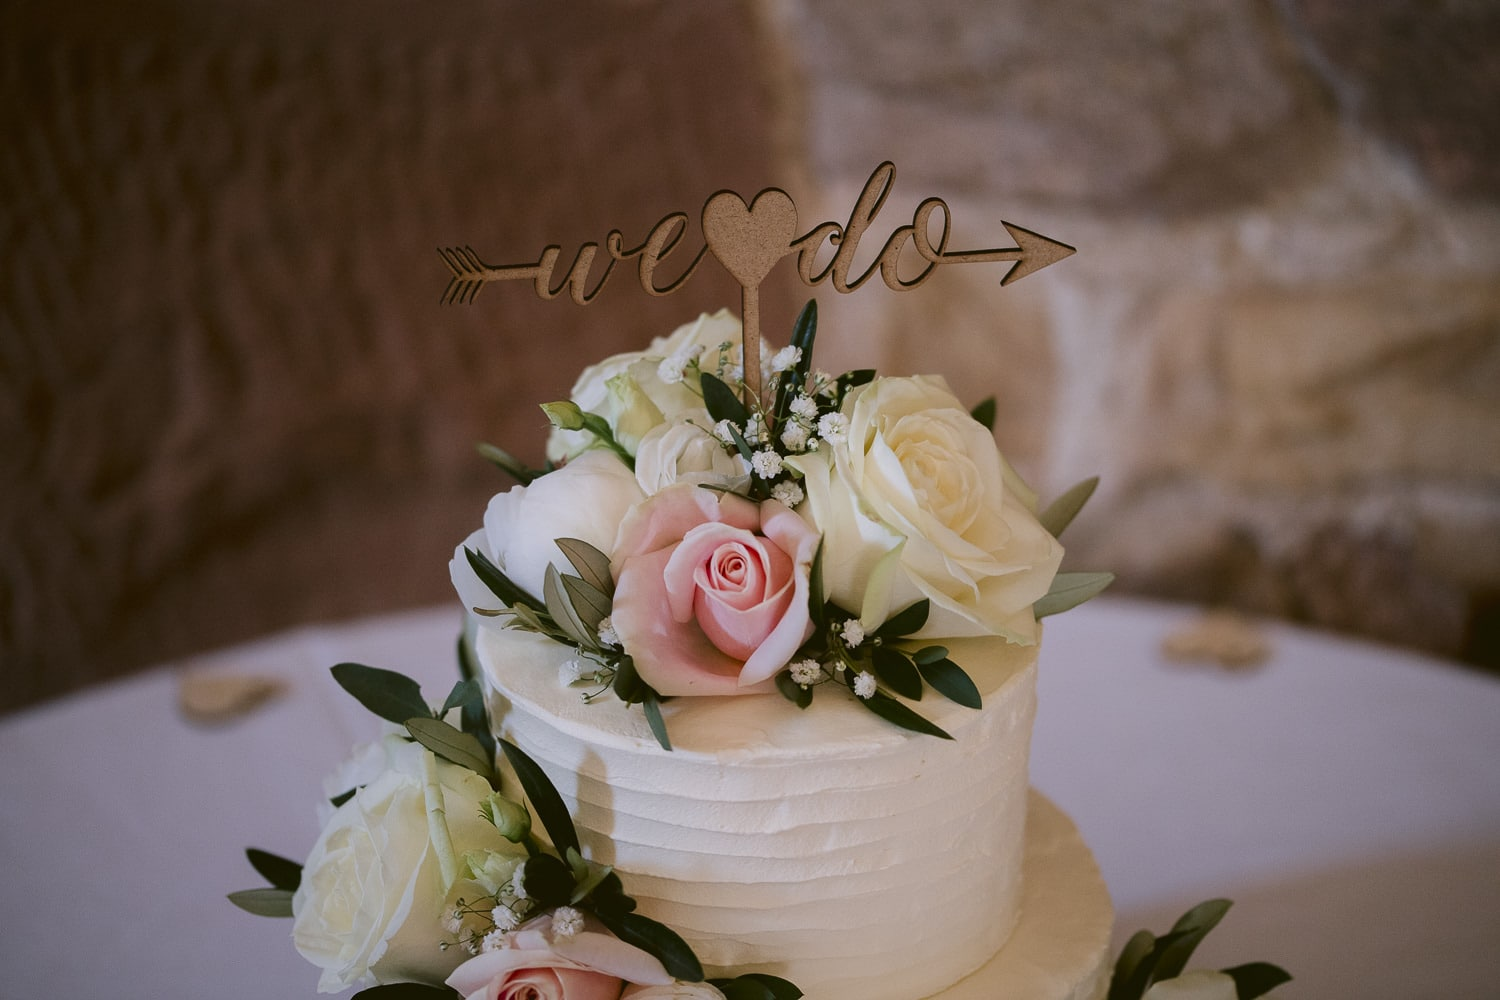 Wedding Cake Decorated in Flowers